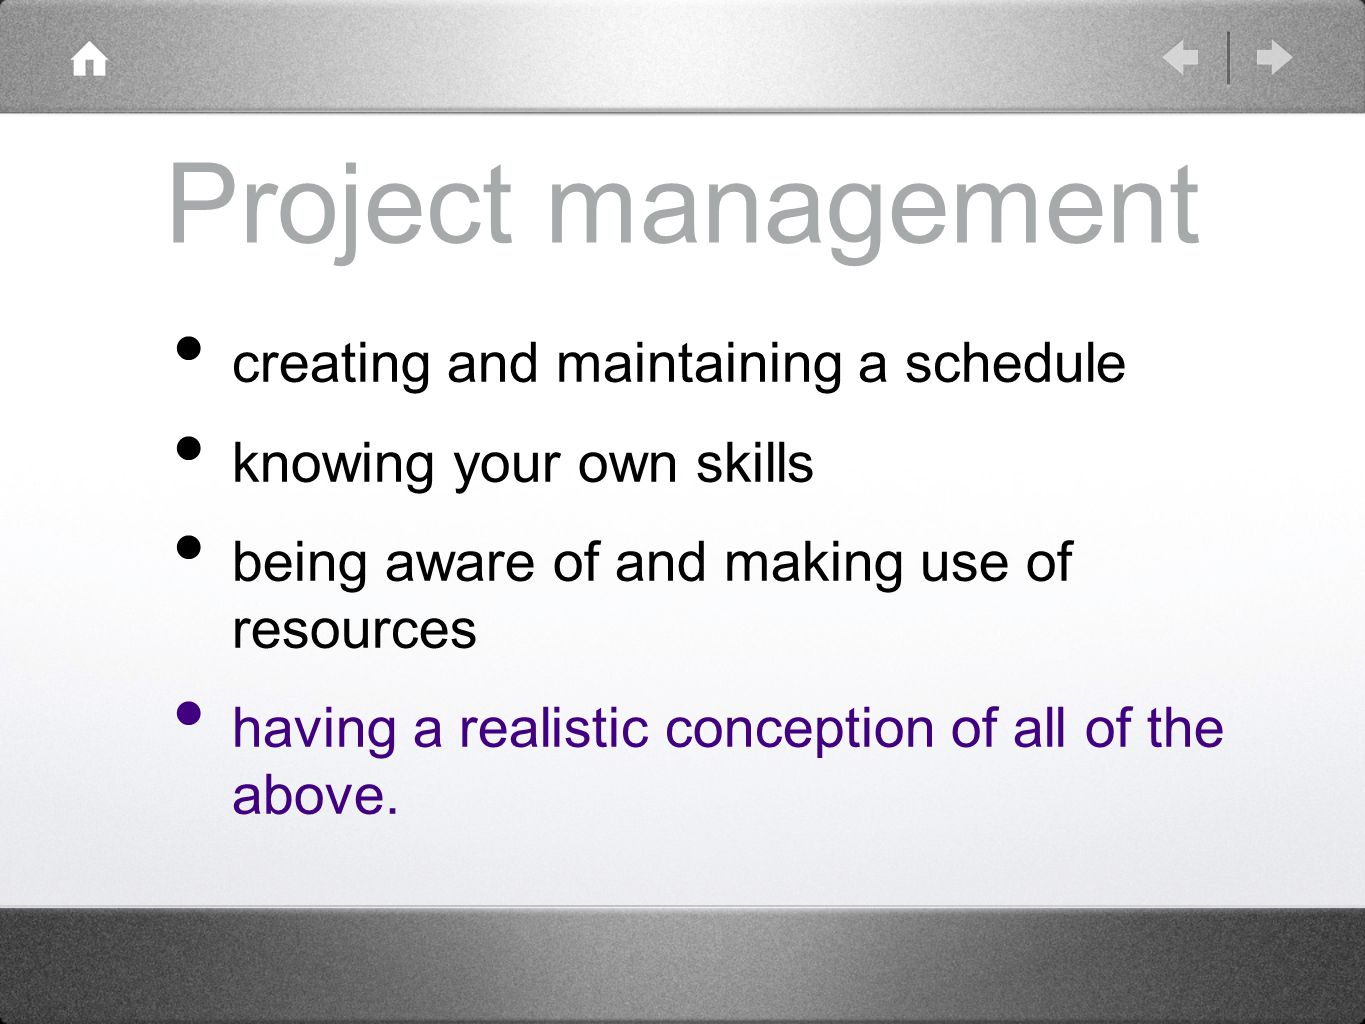 Project management creating and maintaining a schedule knowing your own skills being aware of and making use of resources having a realistic conception of all of the above.